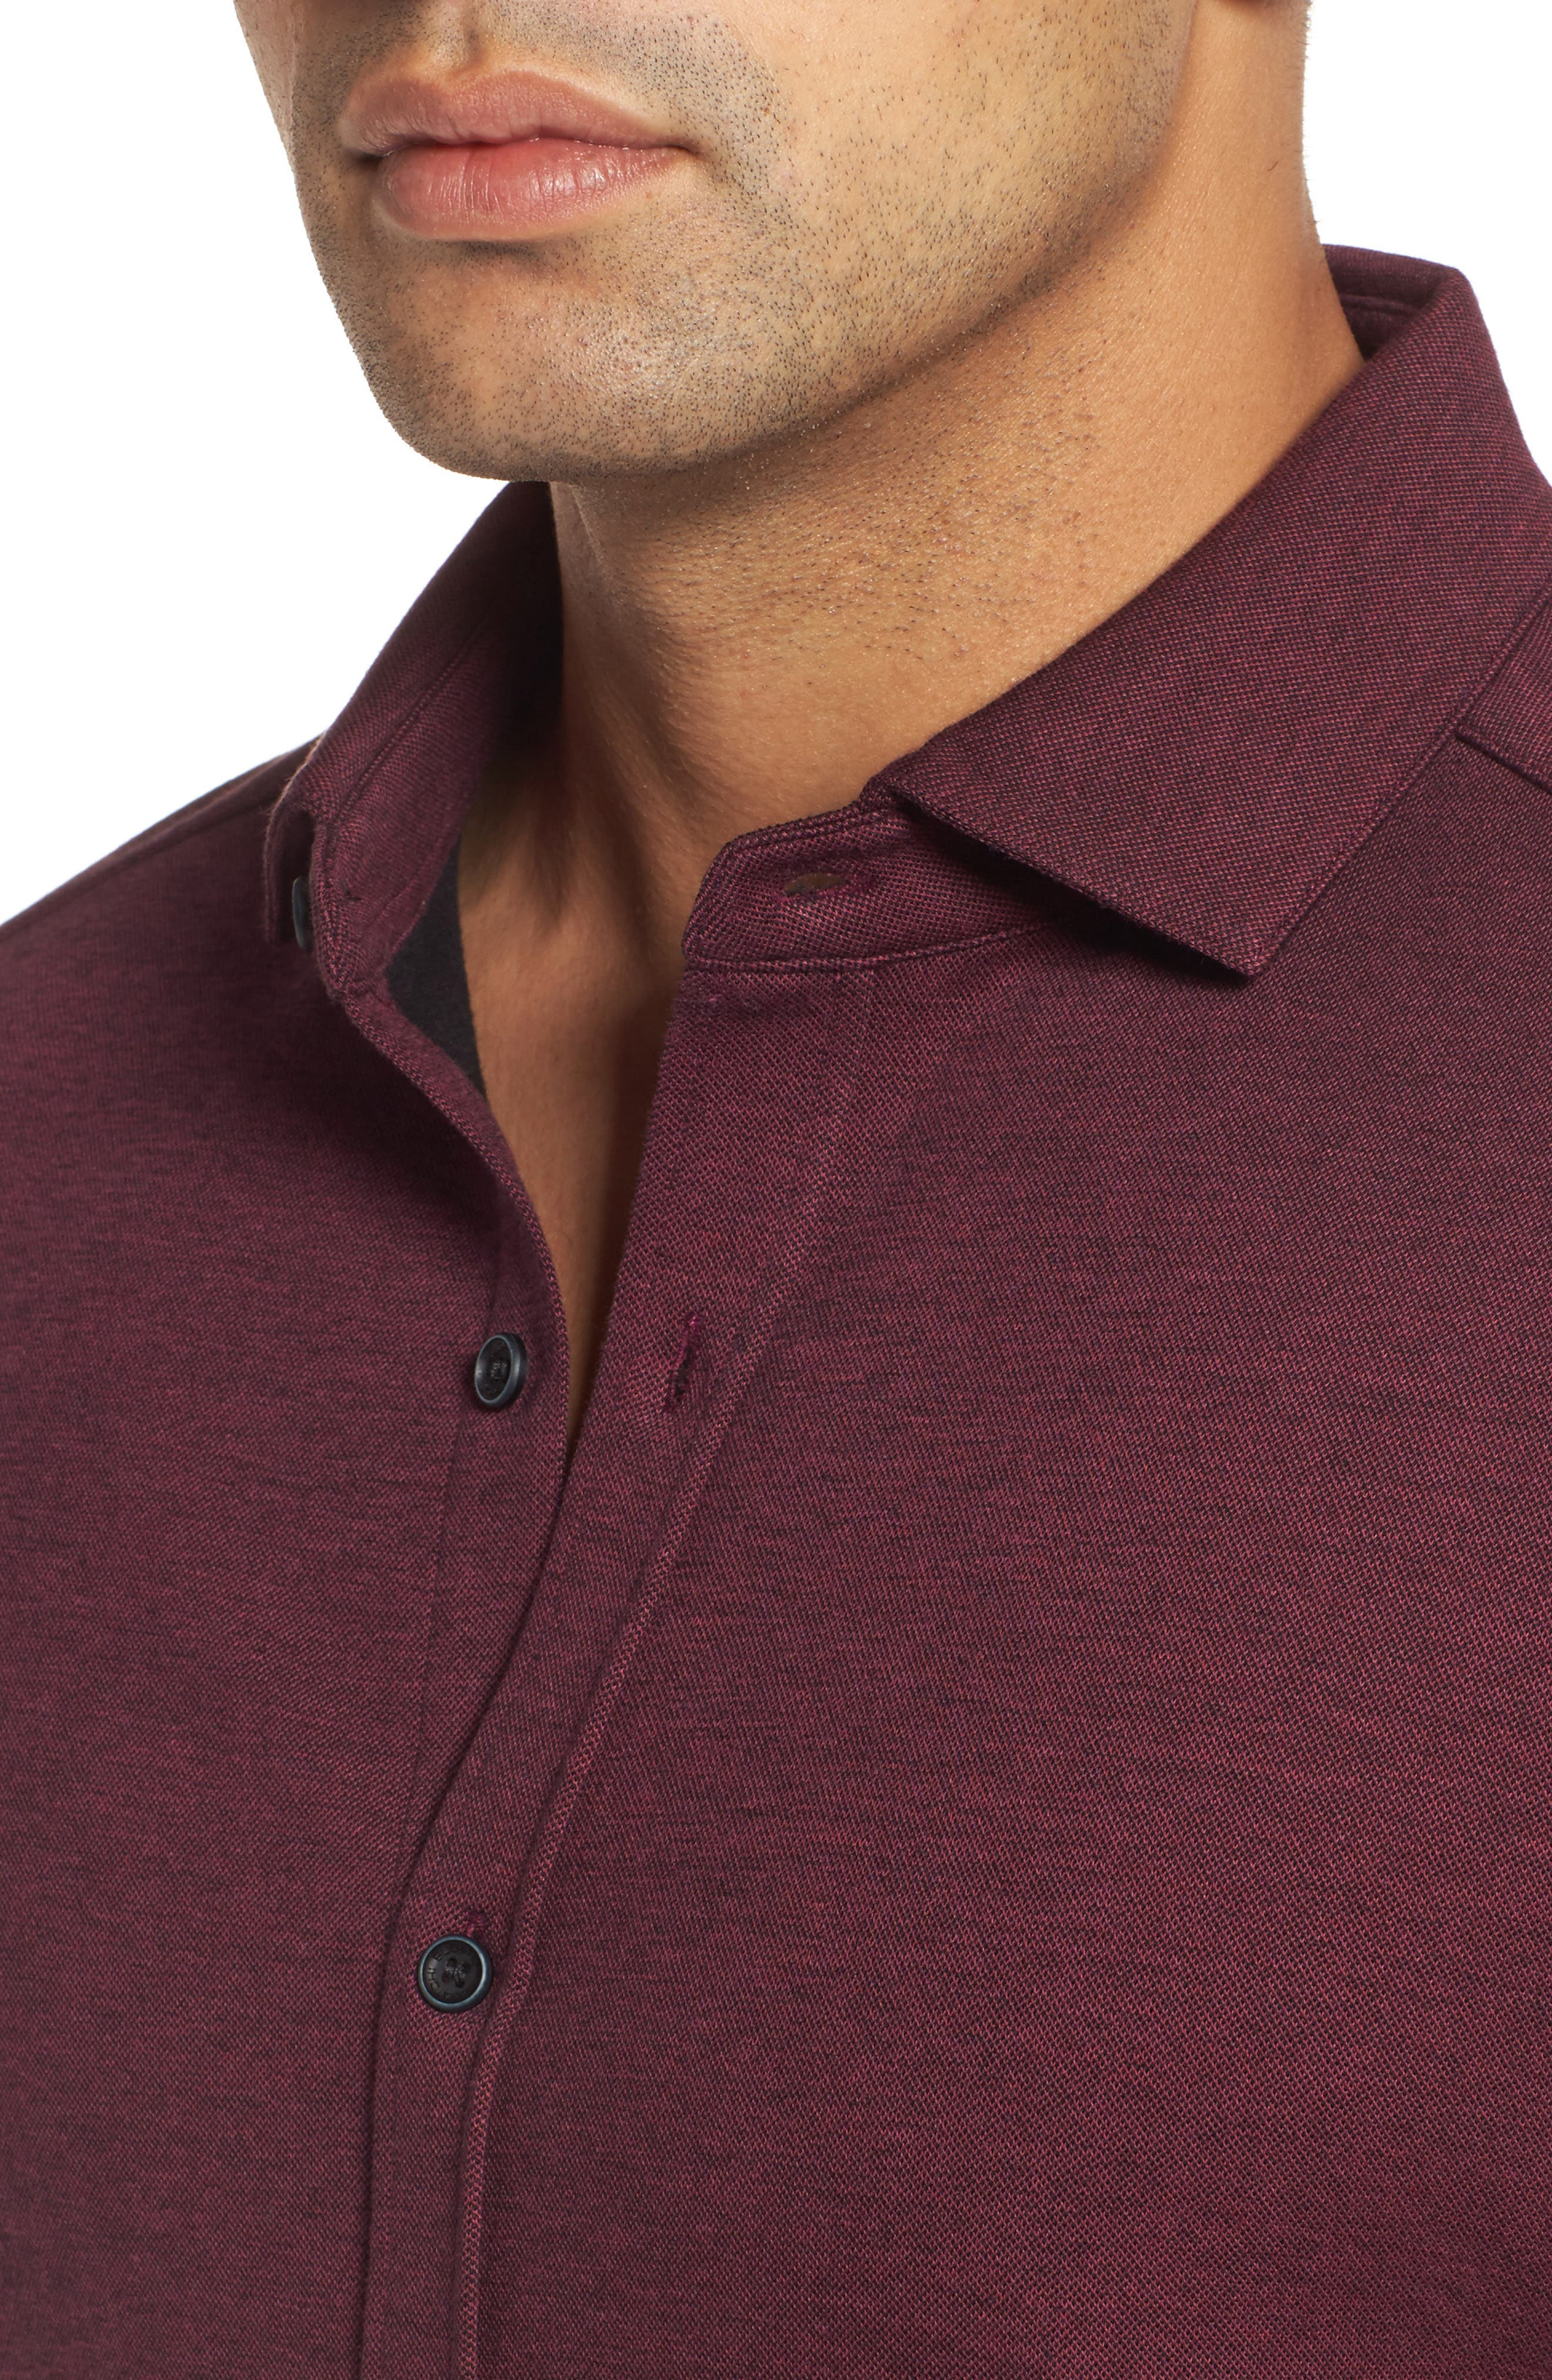 Classic Fit Heathered Knit Sport Shirt,                             Alternate thumbnail 12, color,